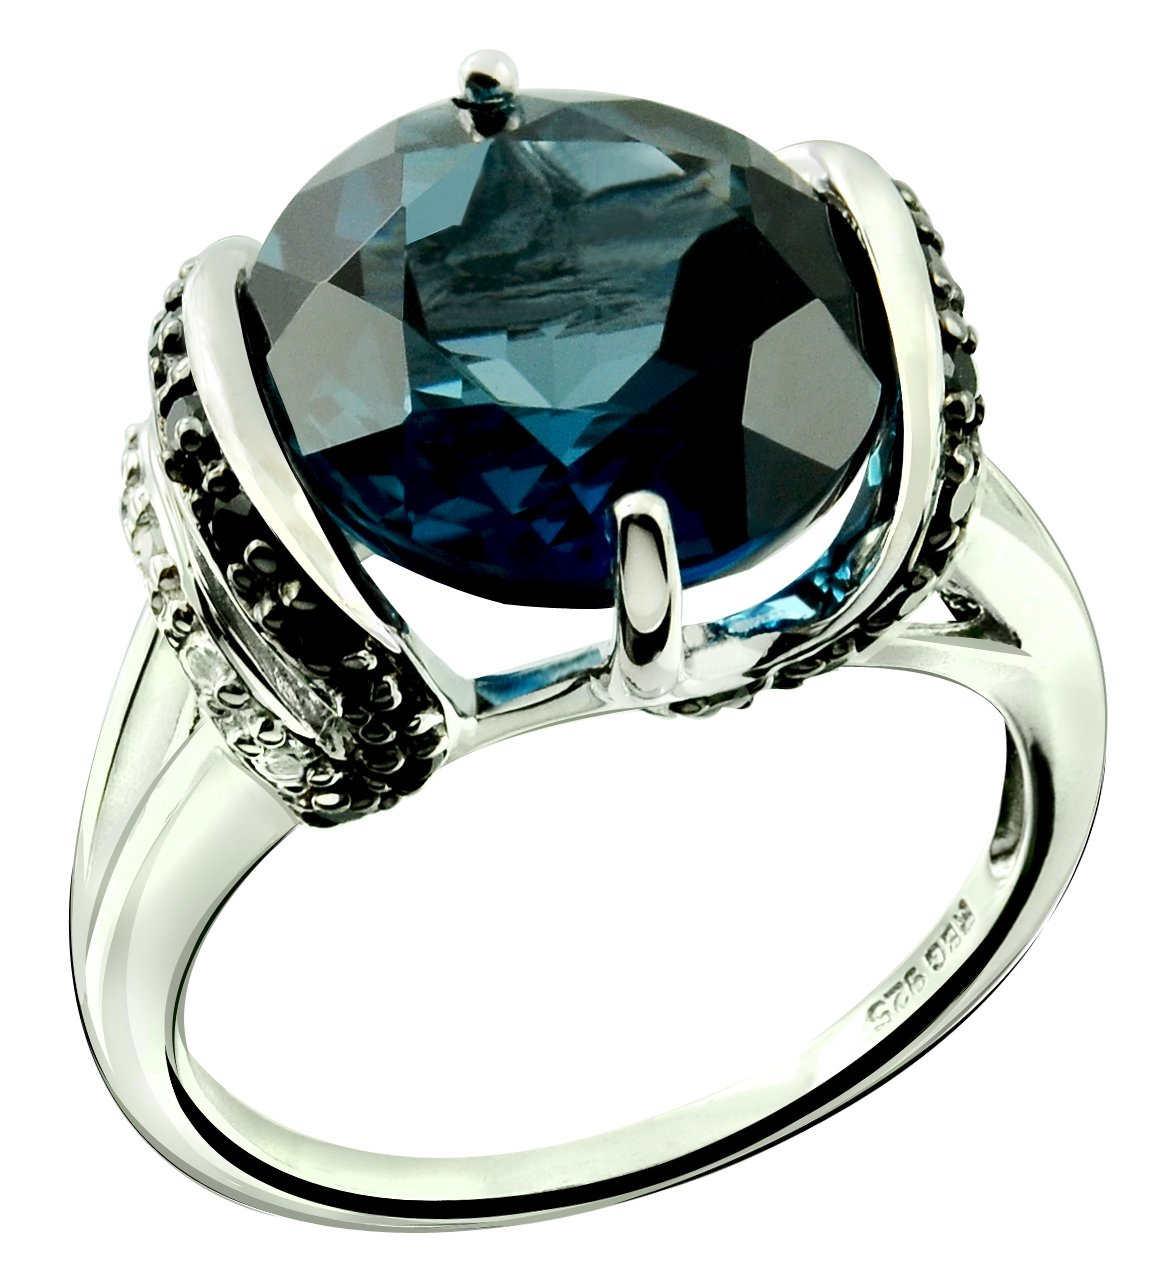 Sterling Silver 925 Ring GENUINE LONDON BLUE TOPAZ and BLACK SPINEL 8.47 Cts with RHODIUM-PLATED Finish (7)